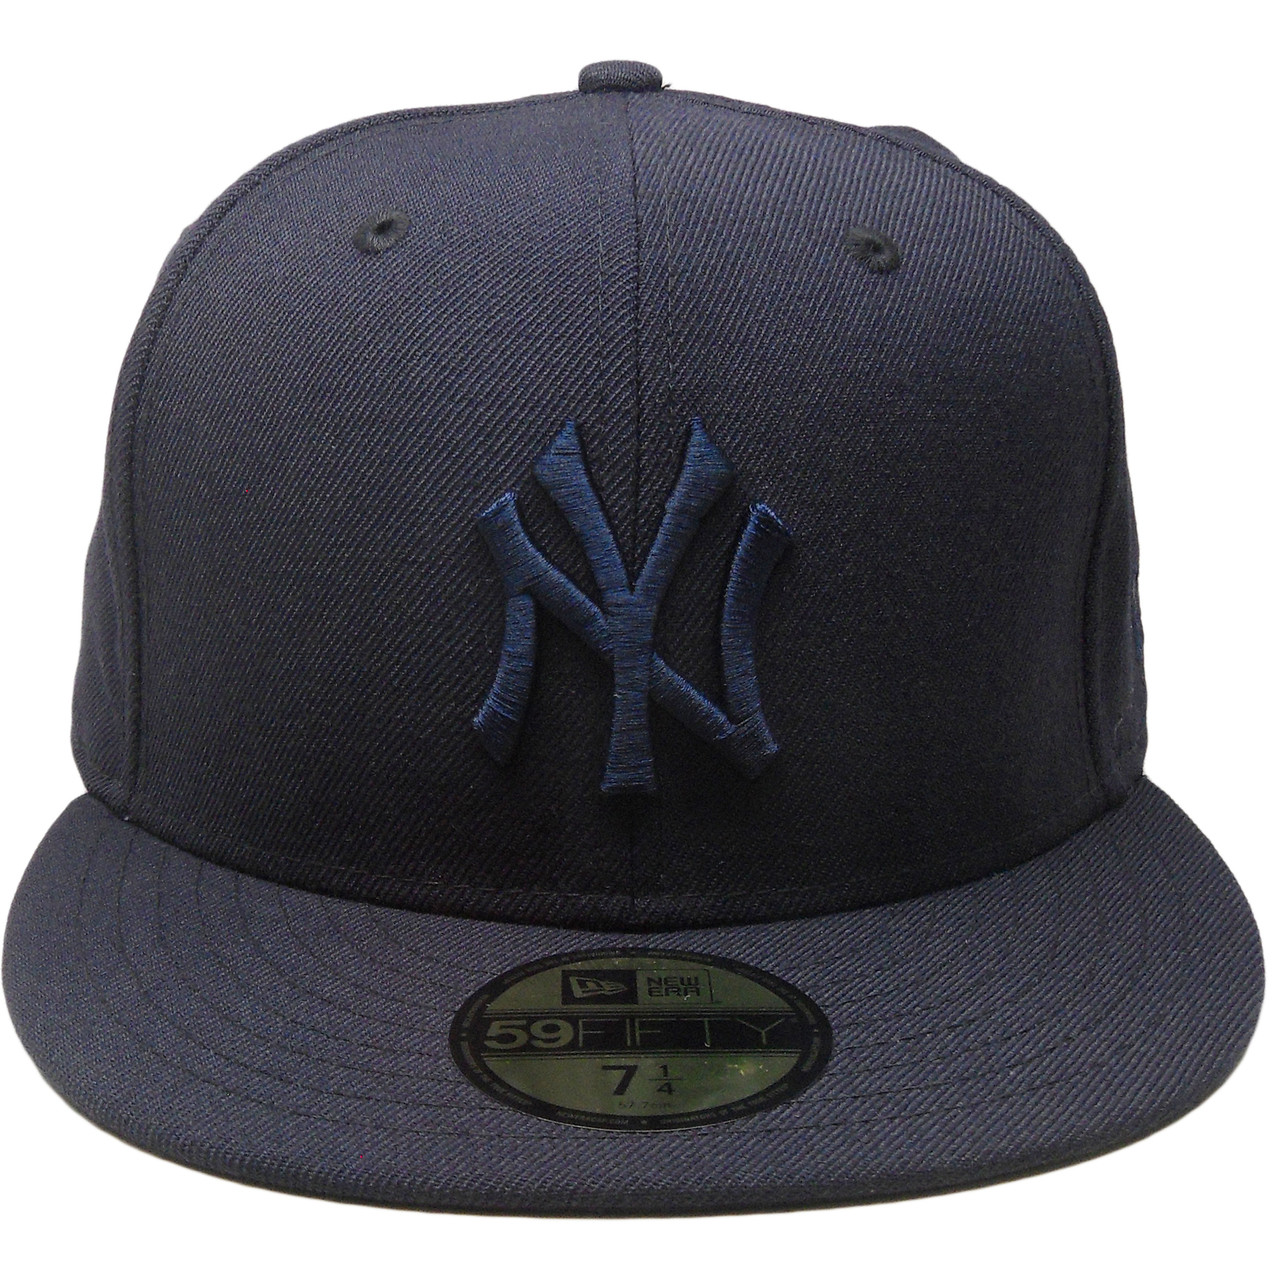 New Era 59Fifty Fitted Cap New York Yankees navy